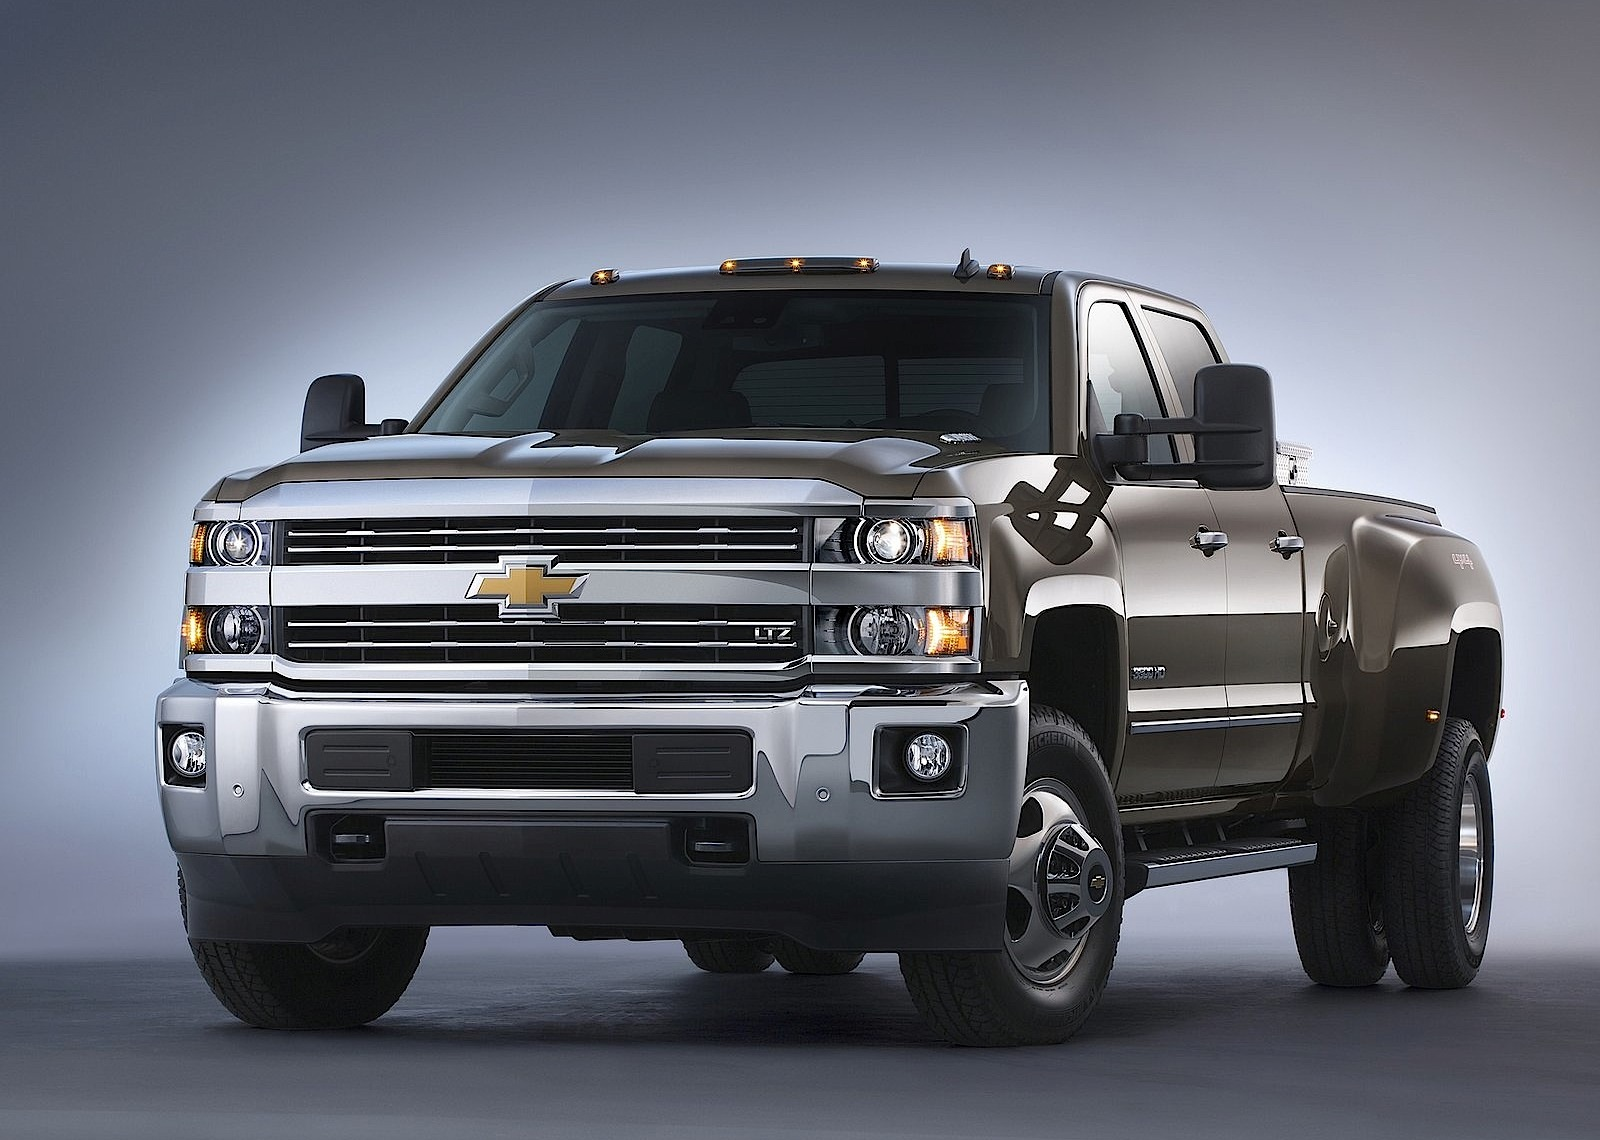 CHEVROLET Silverado 3500 HD Crew Cab specs & photos - 2013, 2014, 2015, 2016, 2017, 2018, 2019 ...